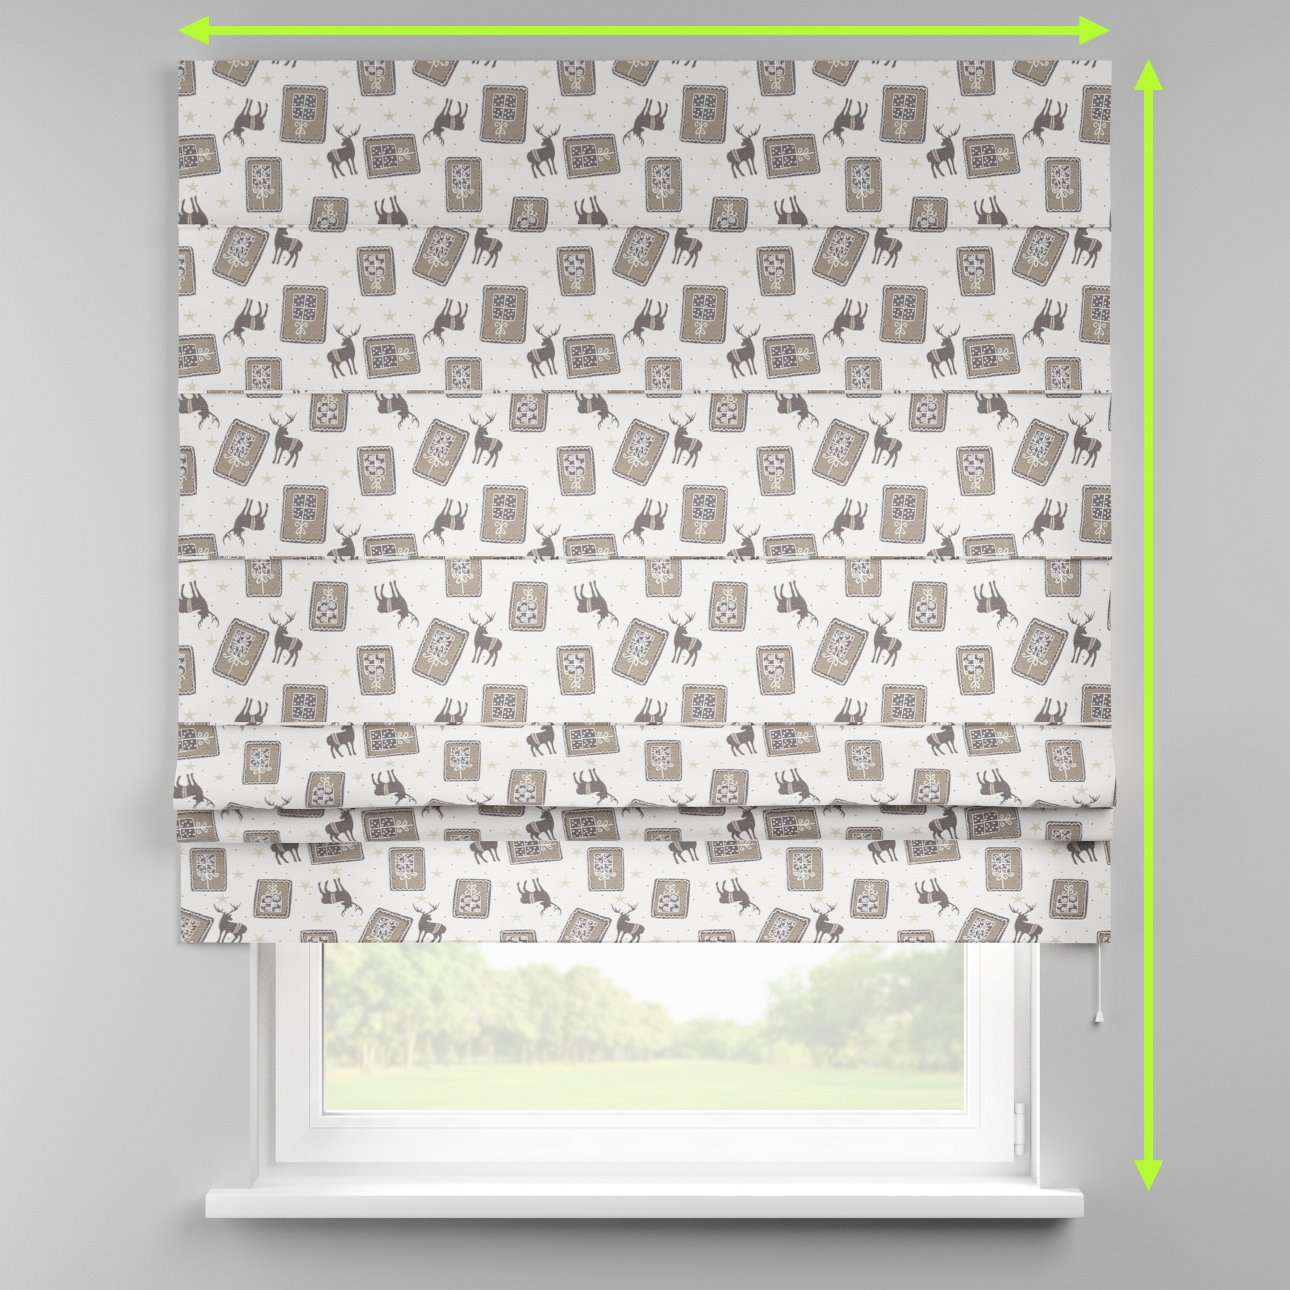 Padva roman blind  in collection Nordic, fabric: 630-10